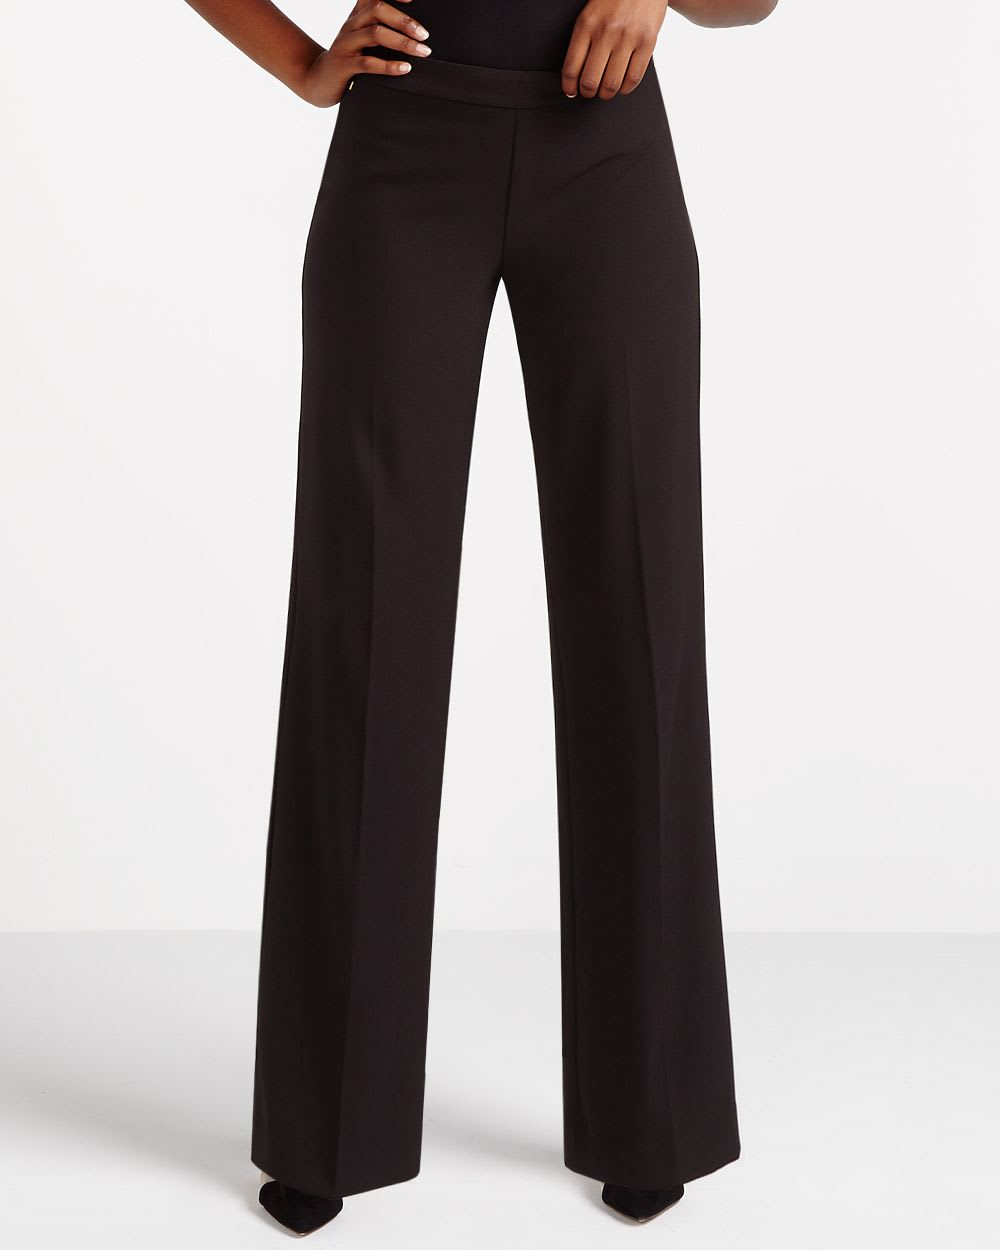 black-petite-dress-slacks-clip